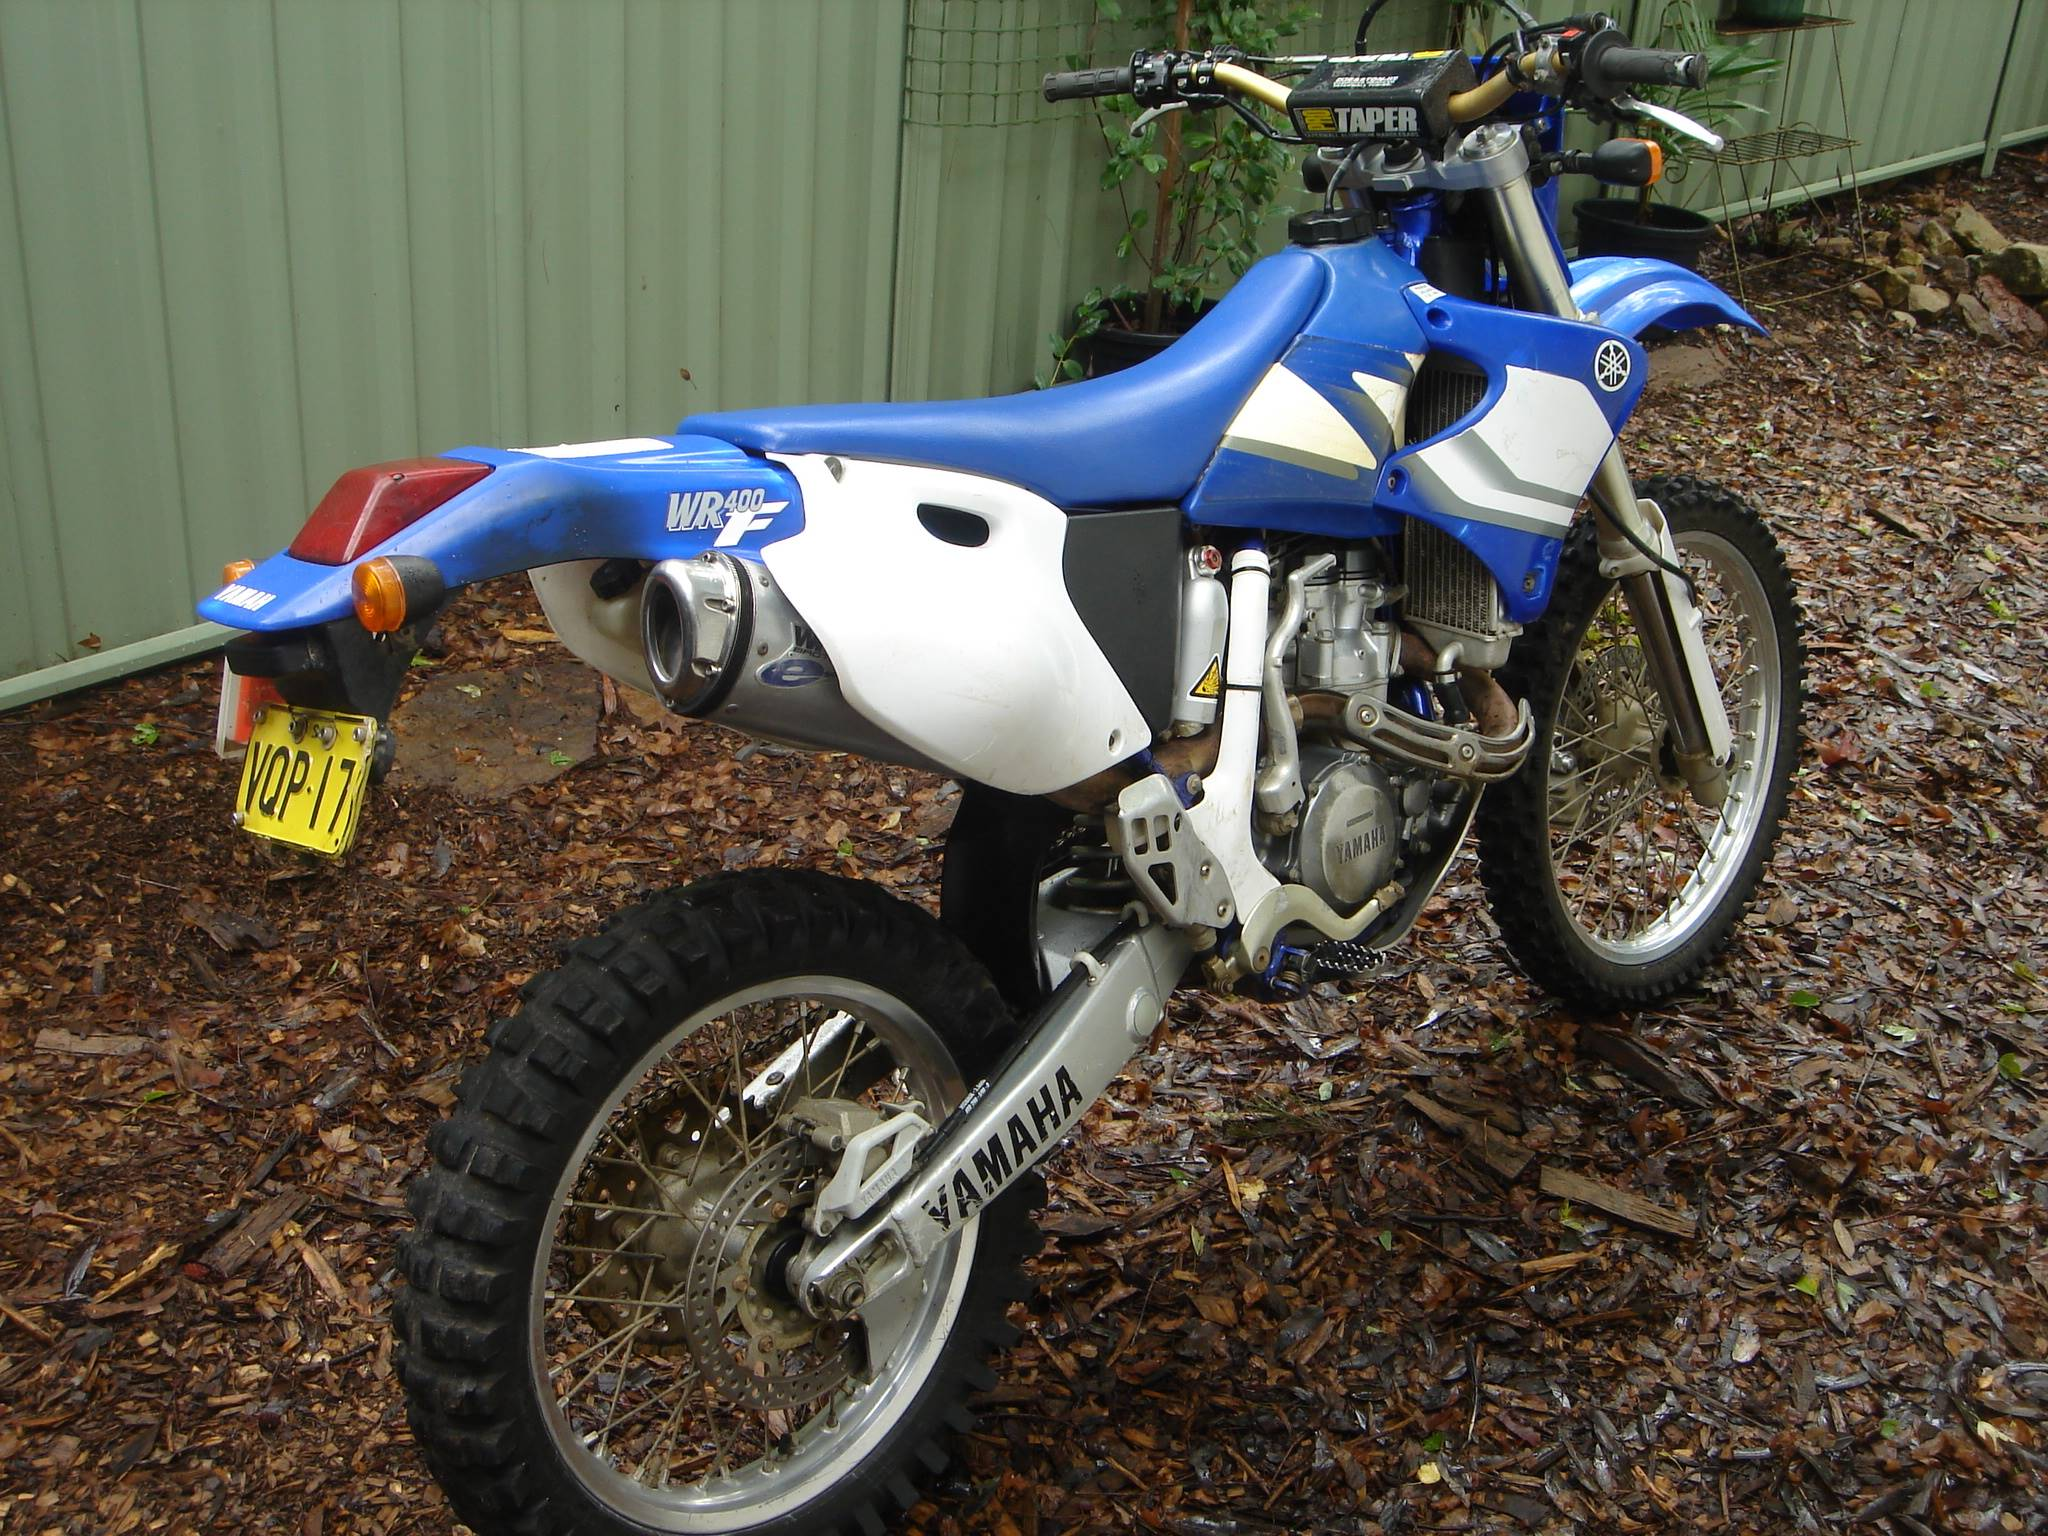 Used Yamaha Street Legal Dirt Bikes For Sale